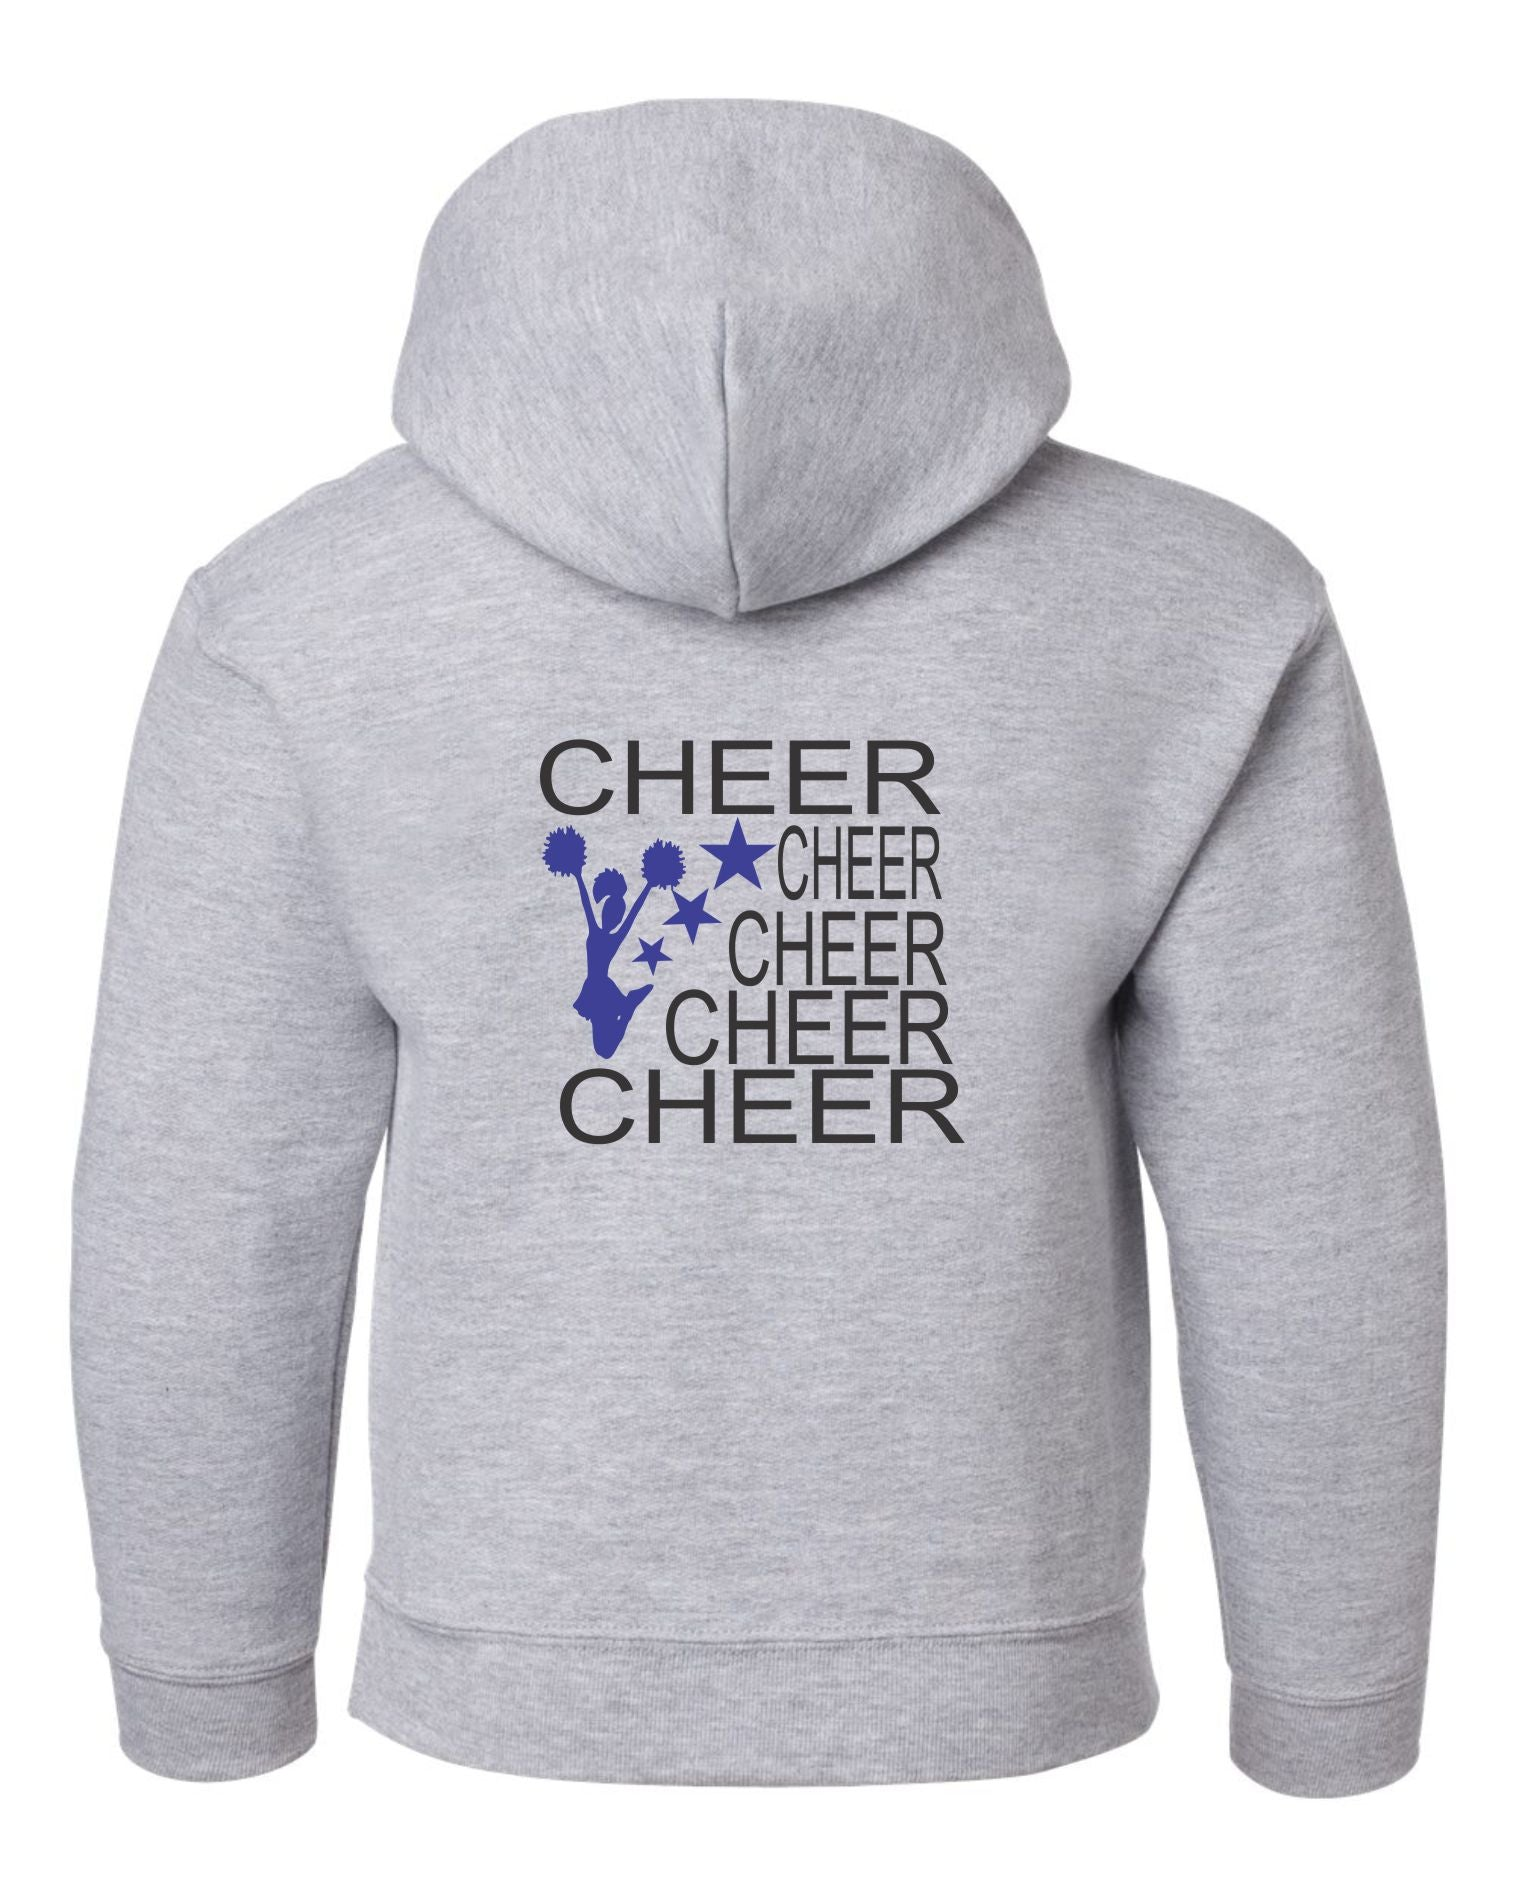 5 Cheers with Cheerleader and Stars Sweatshirt - SERRANIA